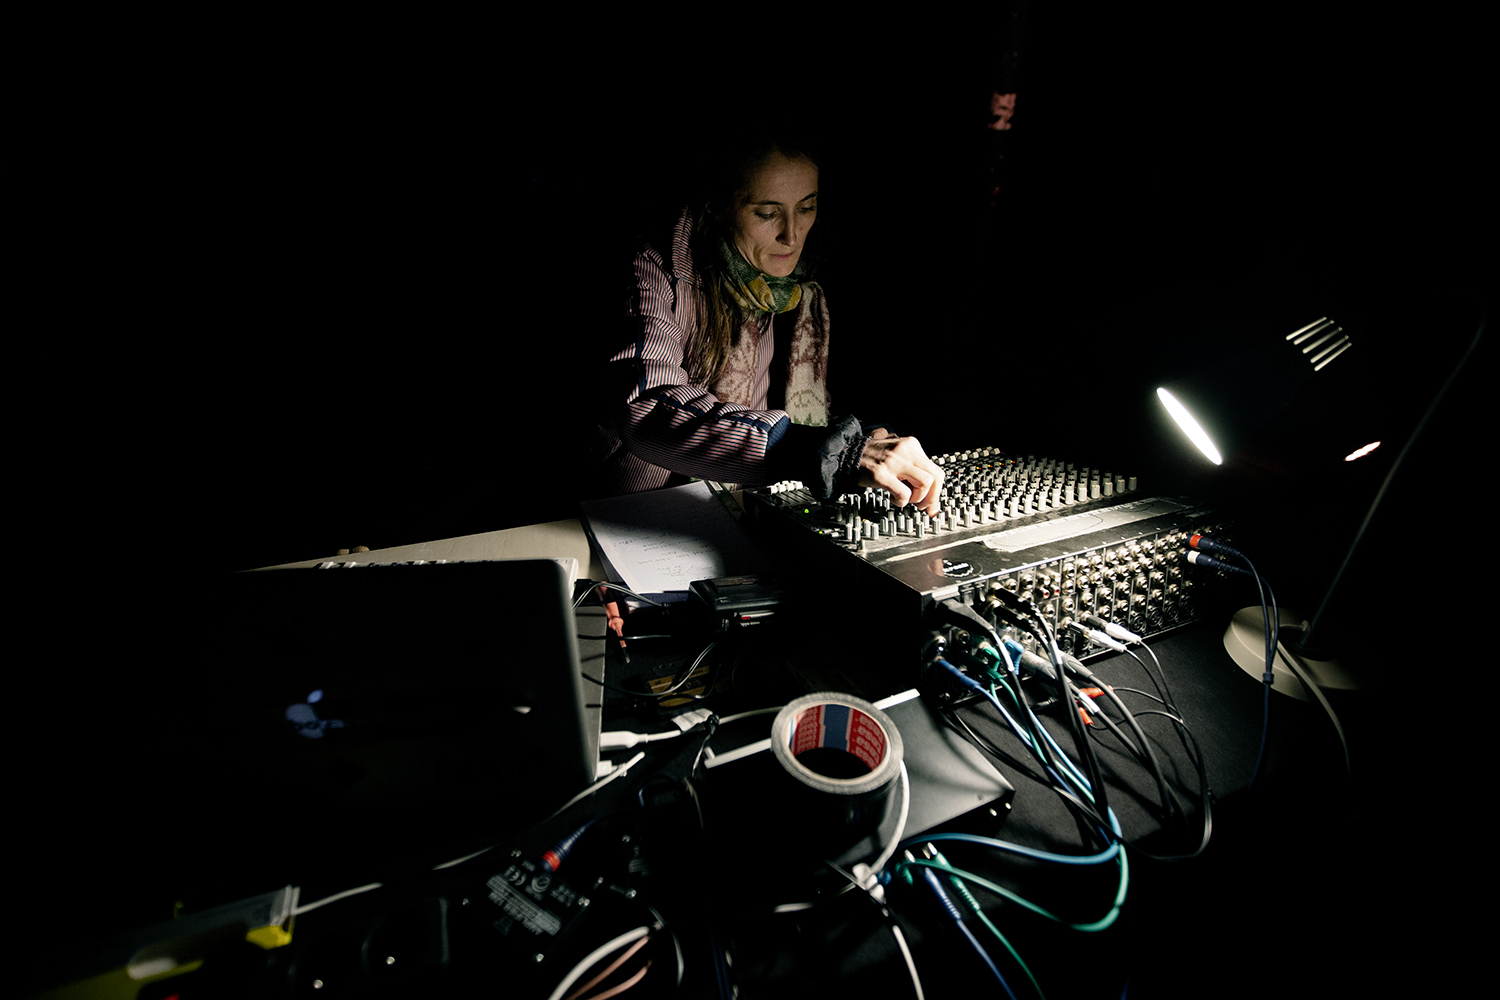 Caroline Profanter - KRAAK - Sonic Treatise - Greylight Projects Chapel - Brussels, Belgium